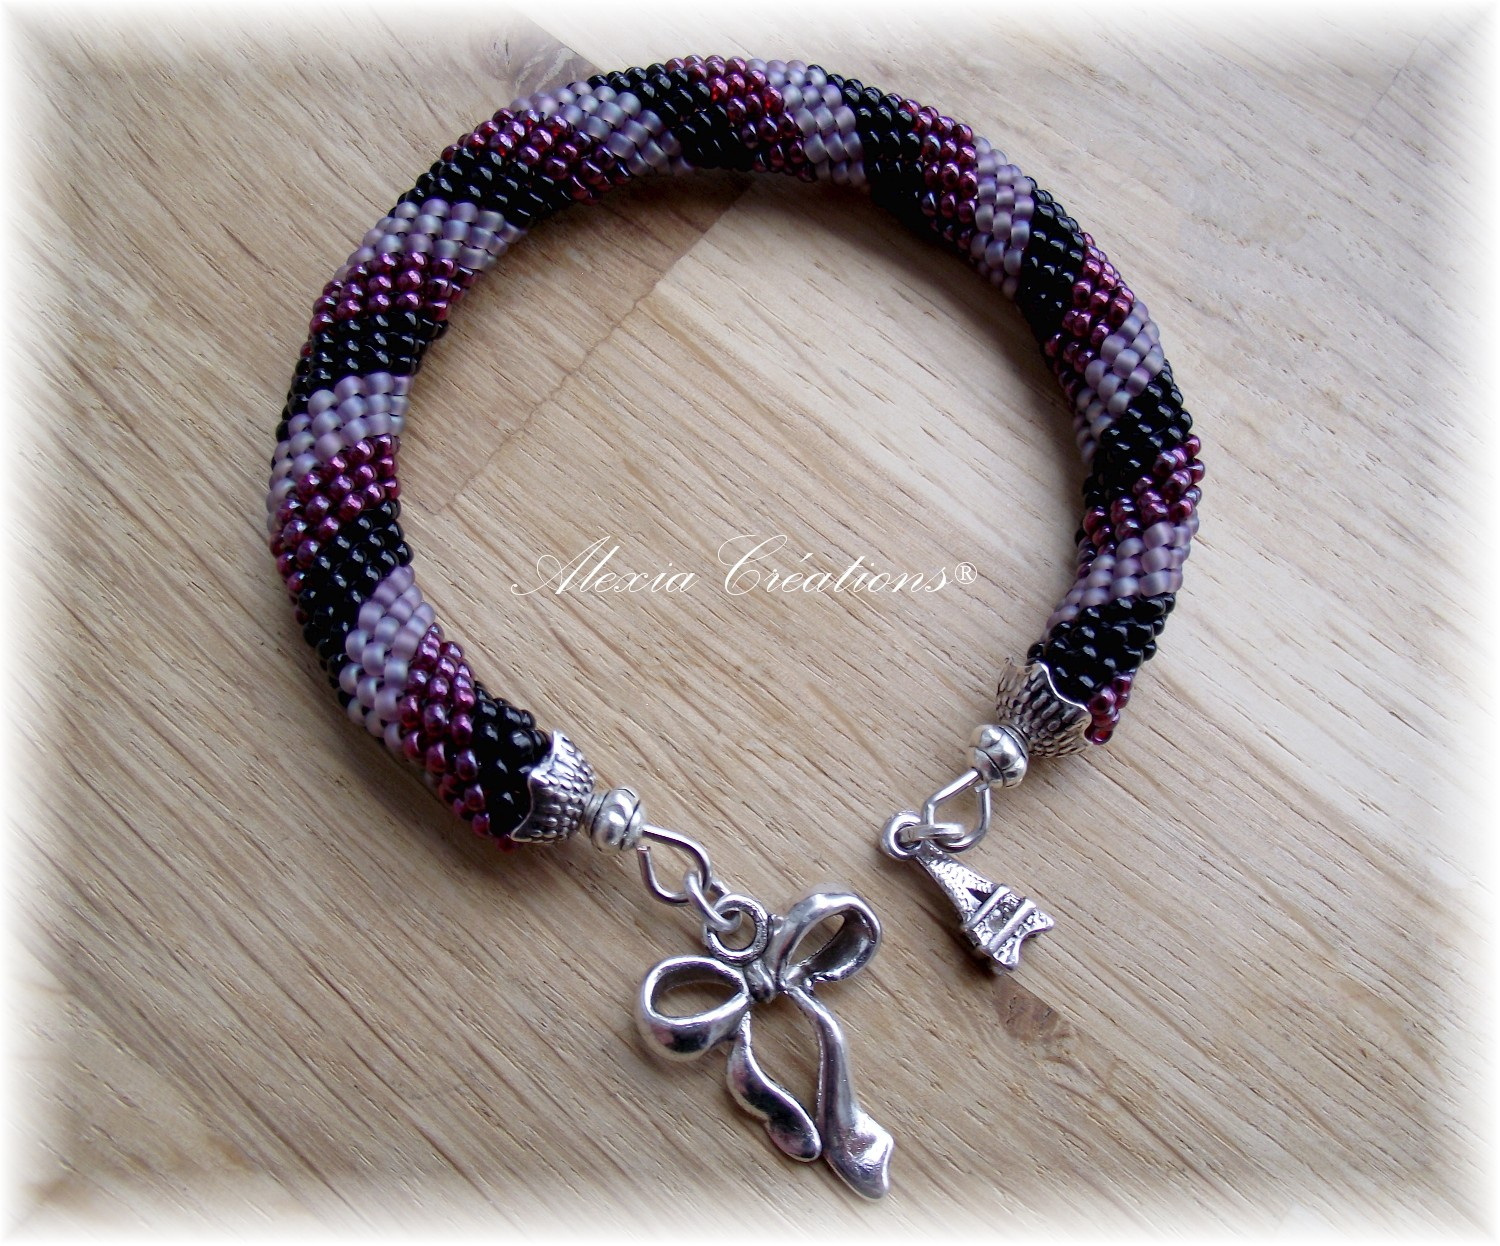 Bracelet spirale peyote - Peyote with a twist